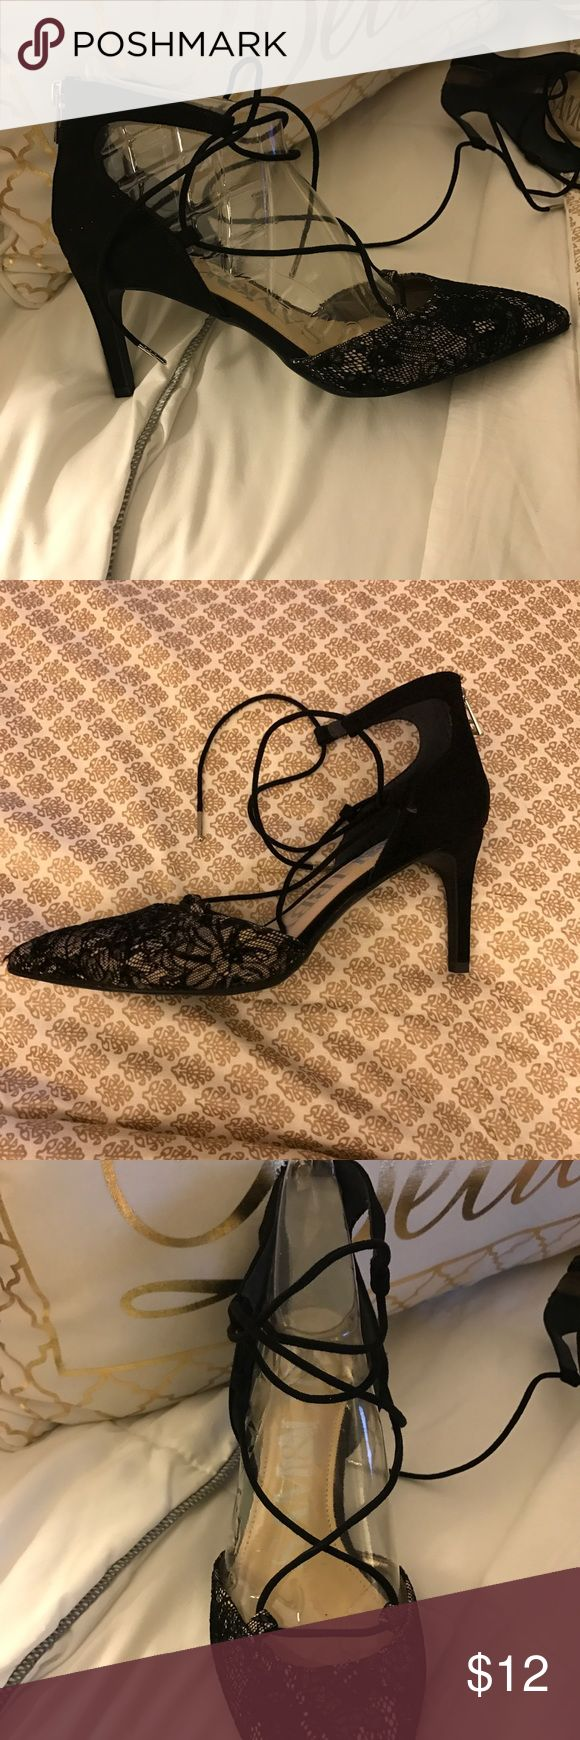 Lace heels with ballerina straps New condition black heels Sam & Libby Shoes Heels